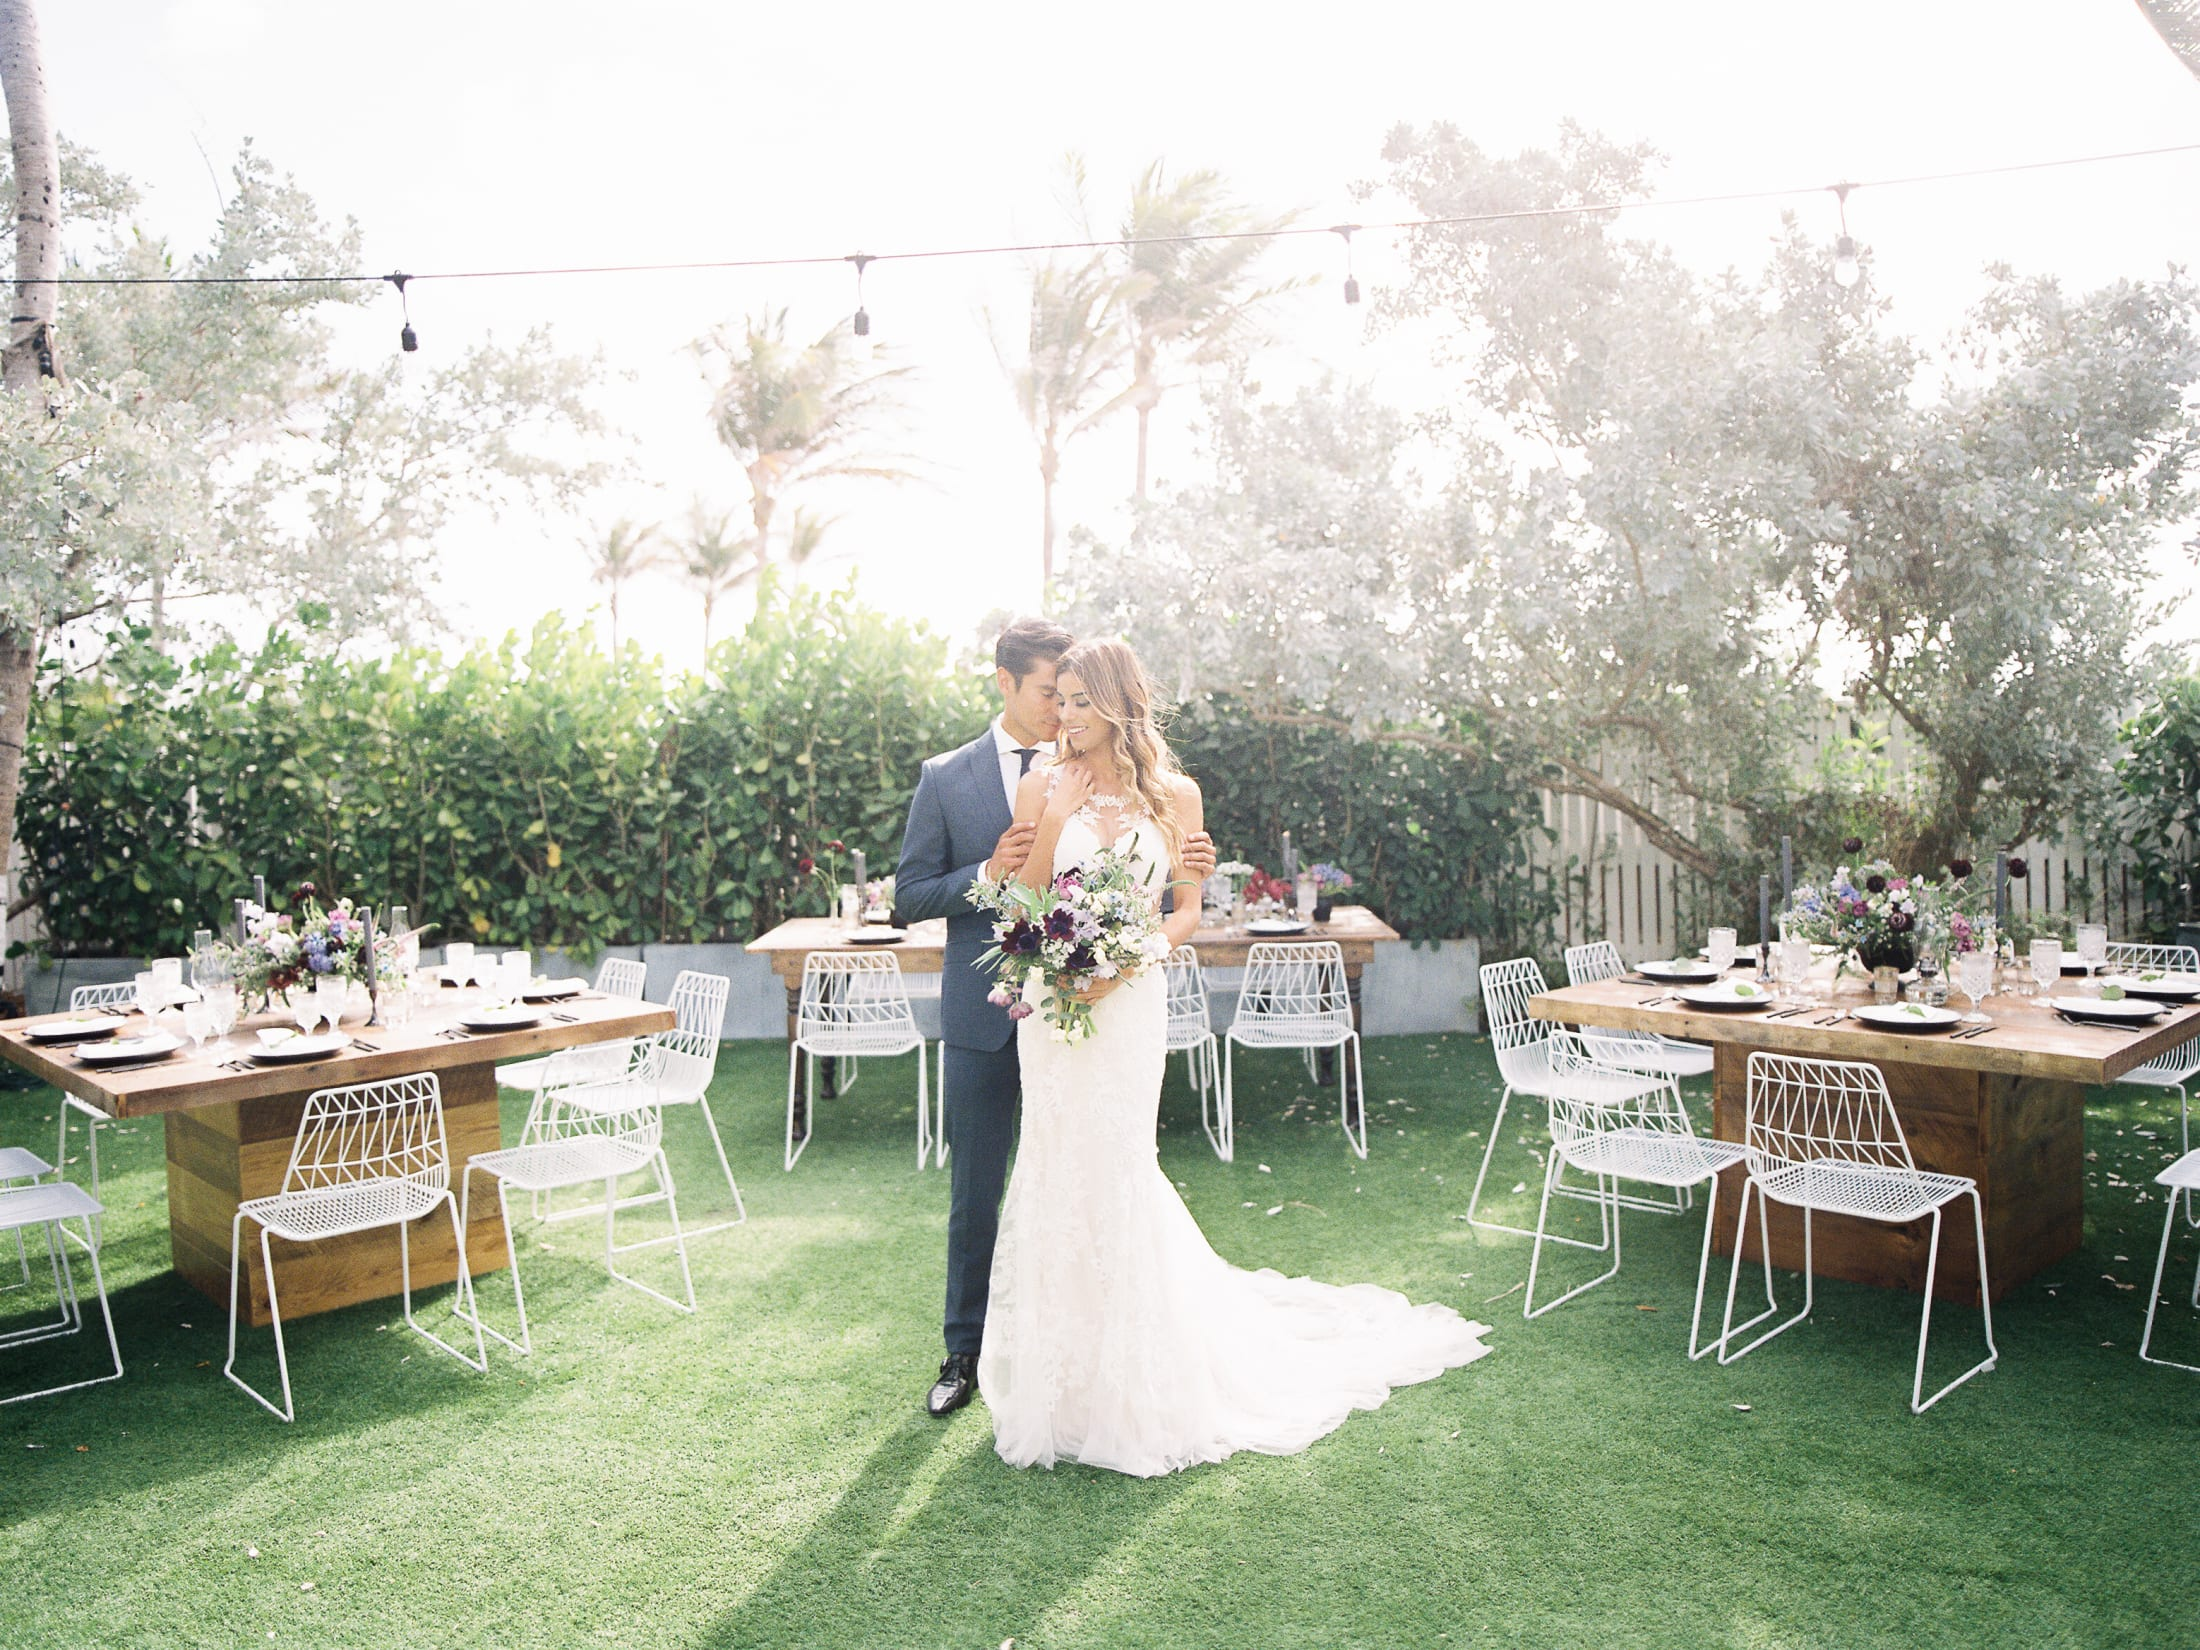 Nautilus by Arlo backyard with green turf and plants and bride and groom embracing in the middle surrounded by wooden tables